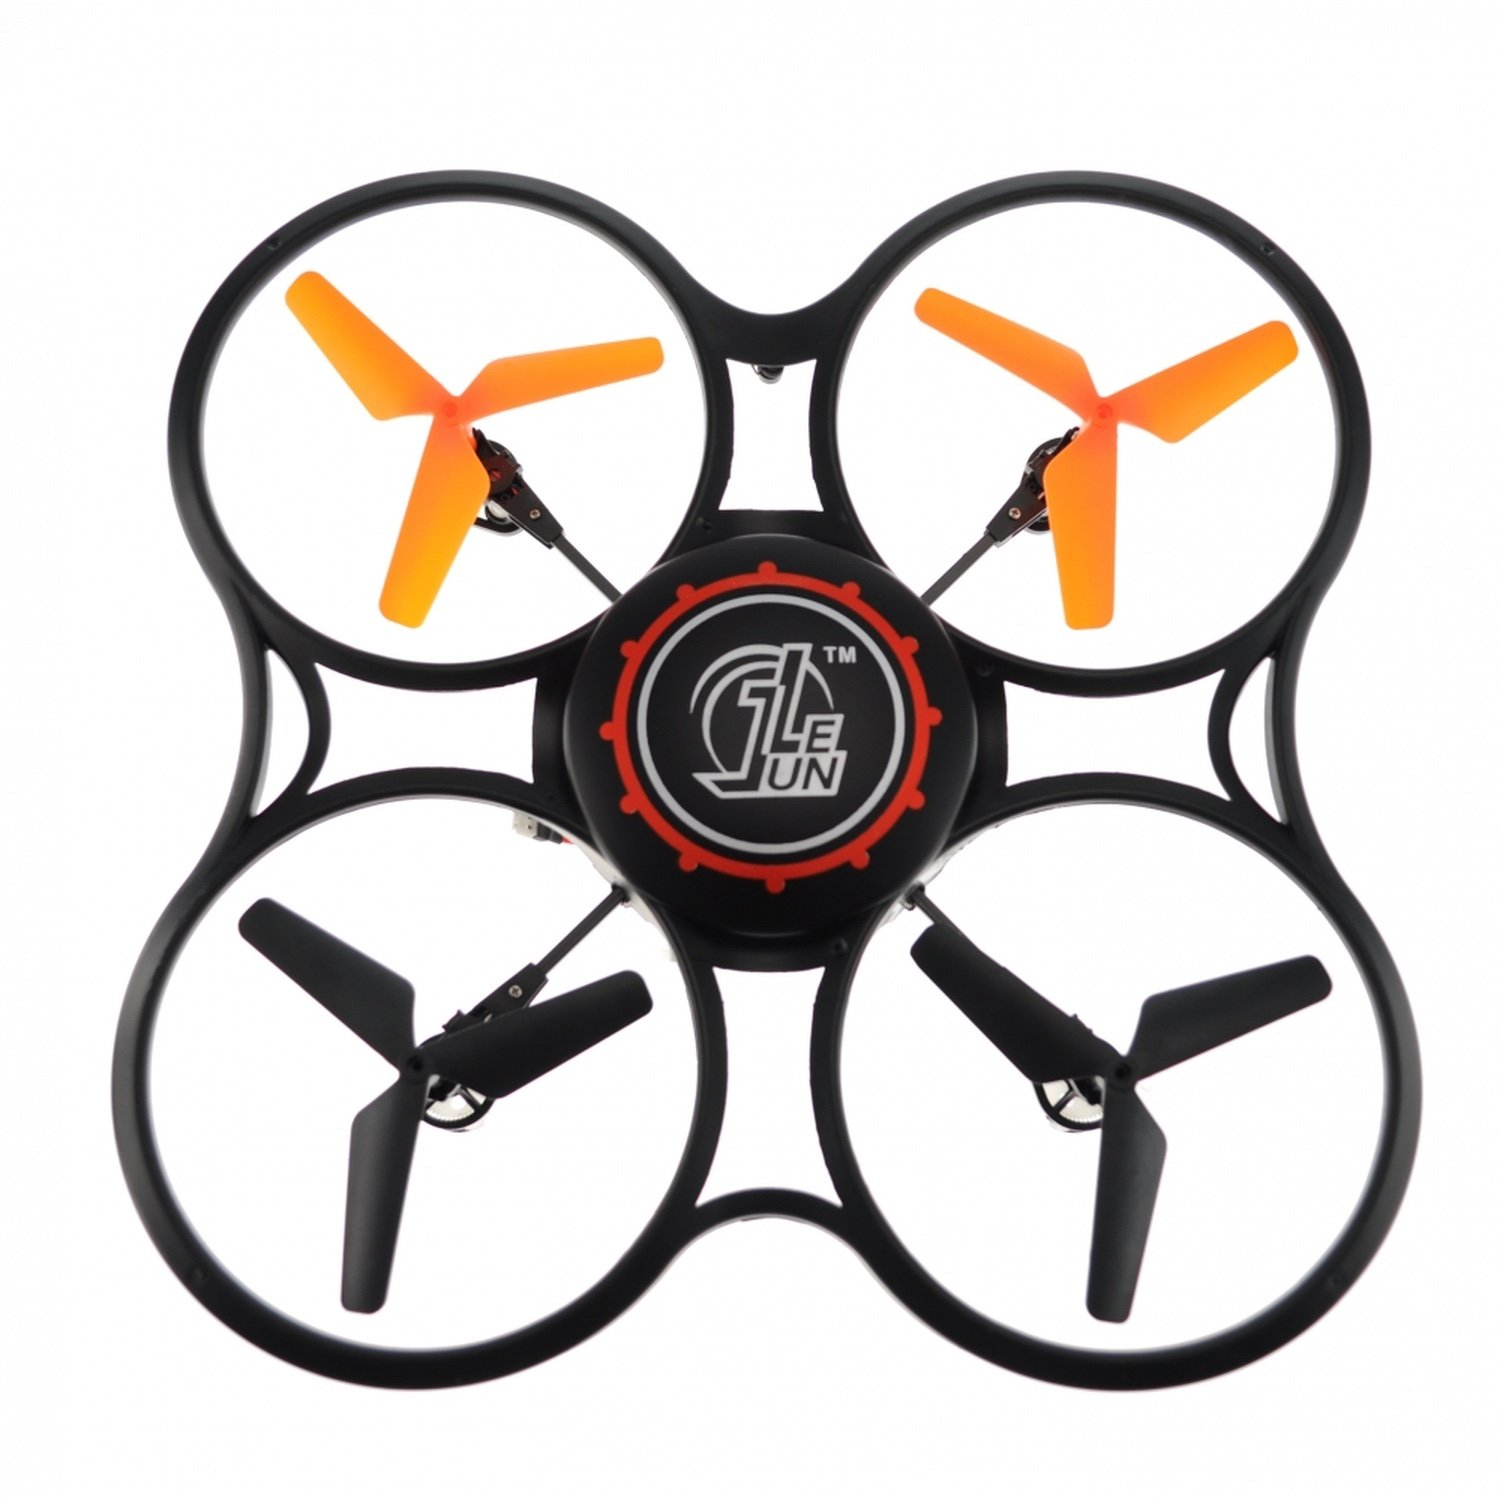 CF881 Quadcopter drone 2,4ghz 4 channel, 6-axis gyroscope, 25cm x 25cm x 6cm